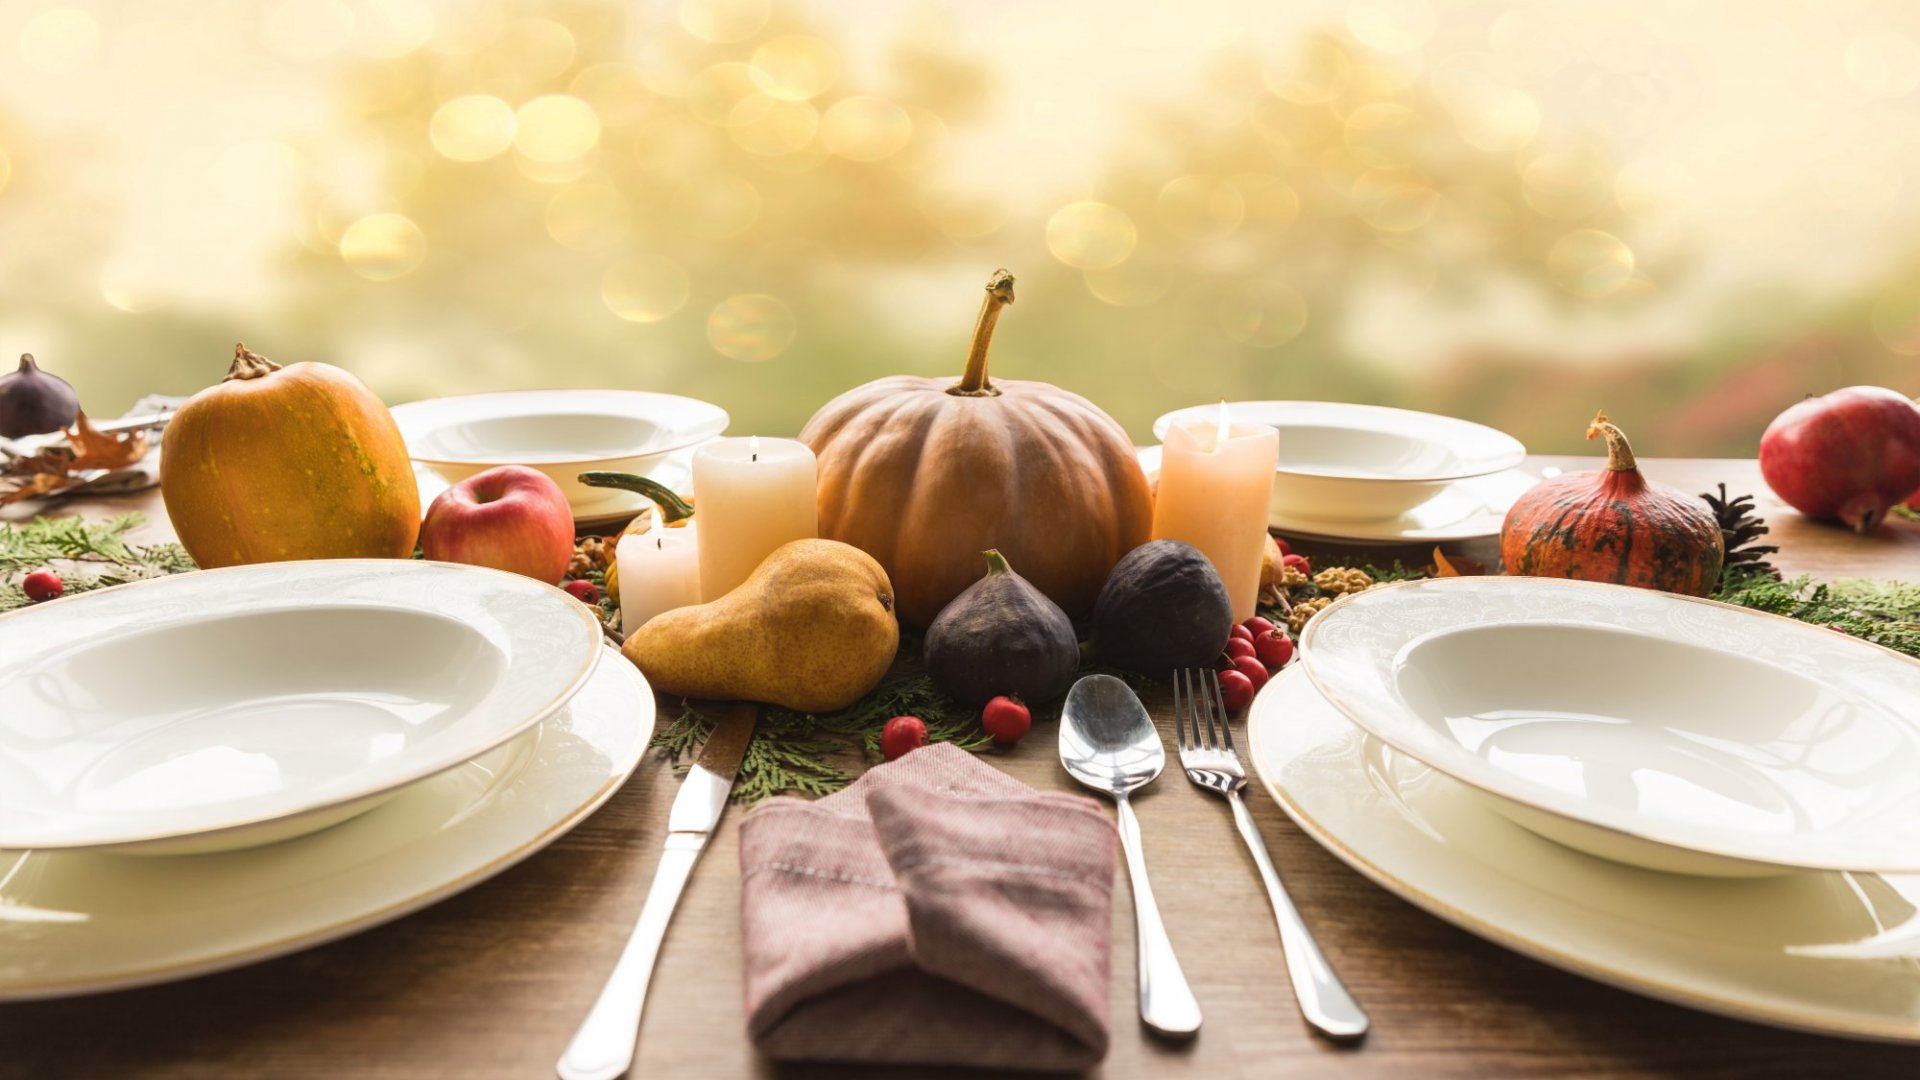 Who Needs Family Drama on Thanksgiving? Pass Around These 35 Questions to Keep the Gratitude Flowing